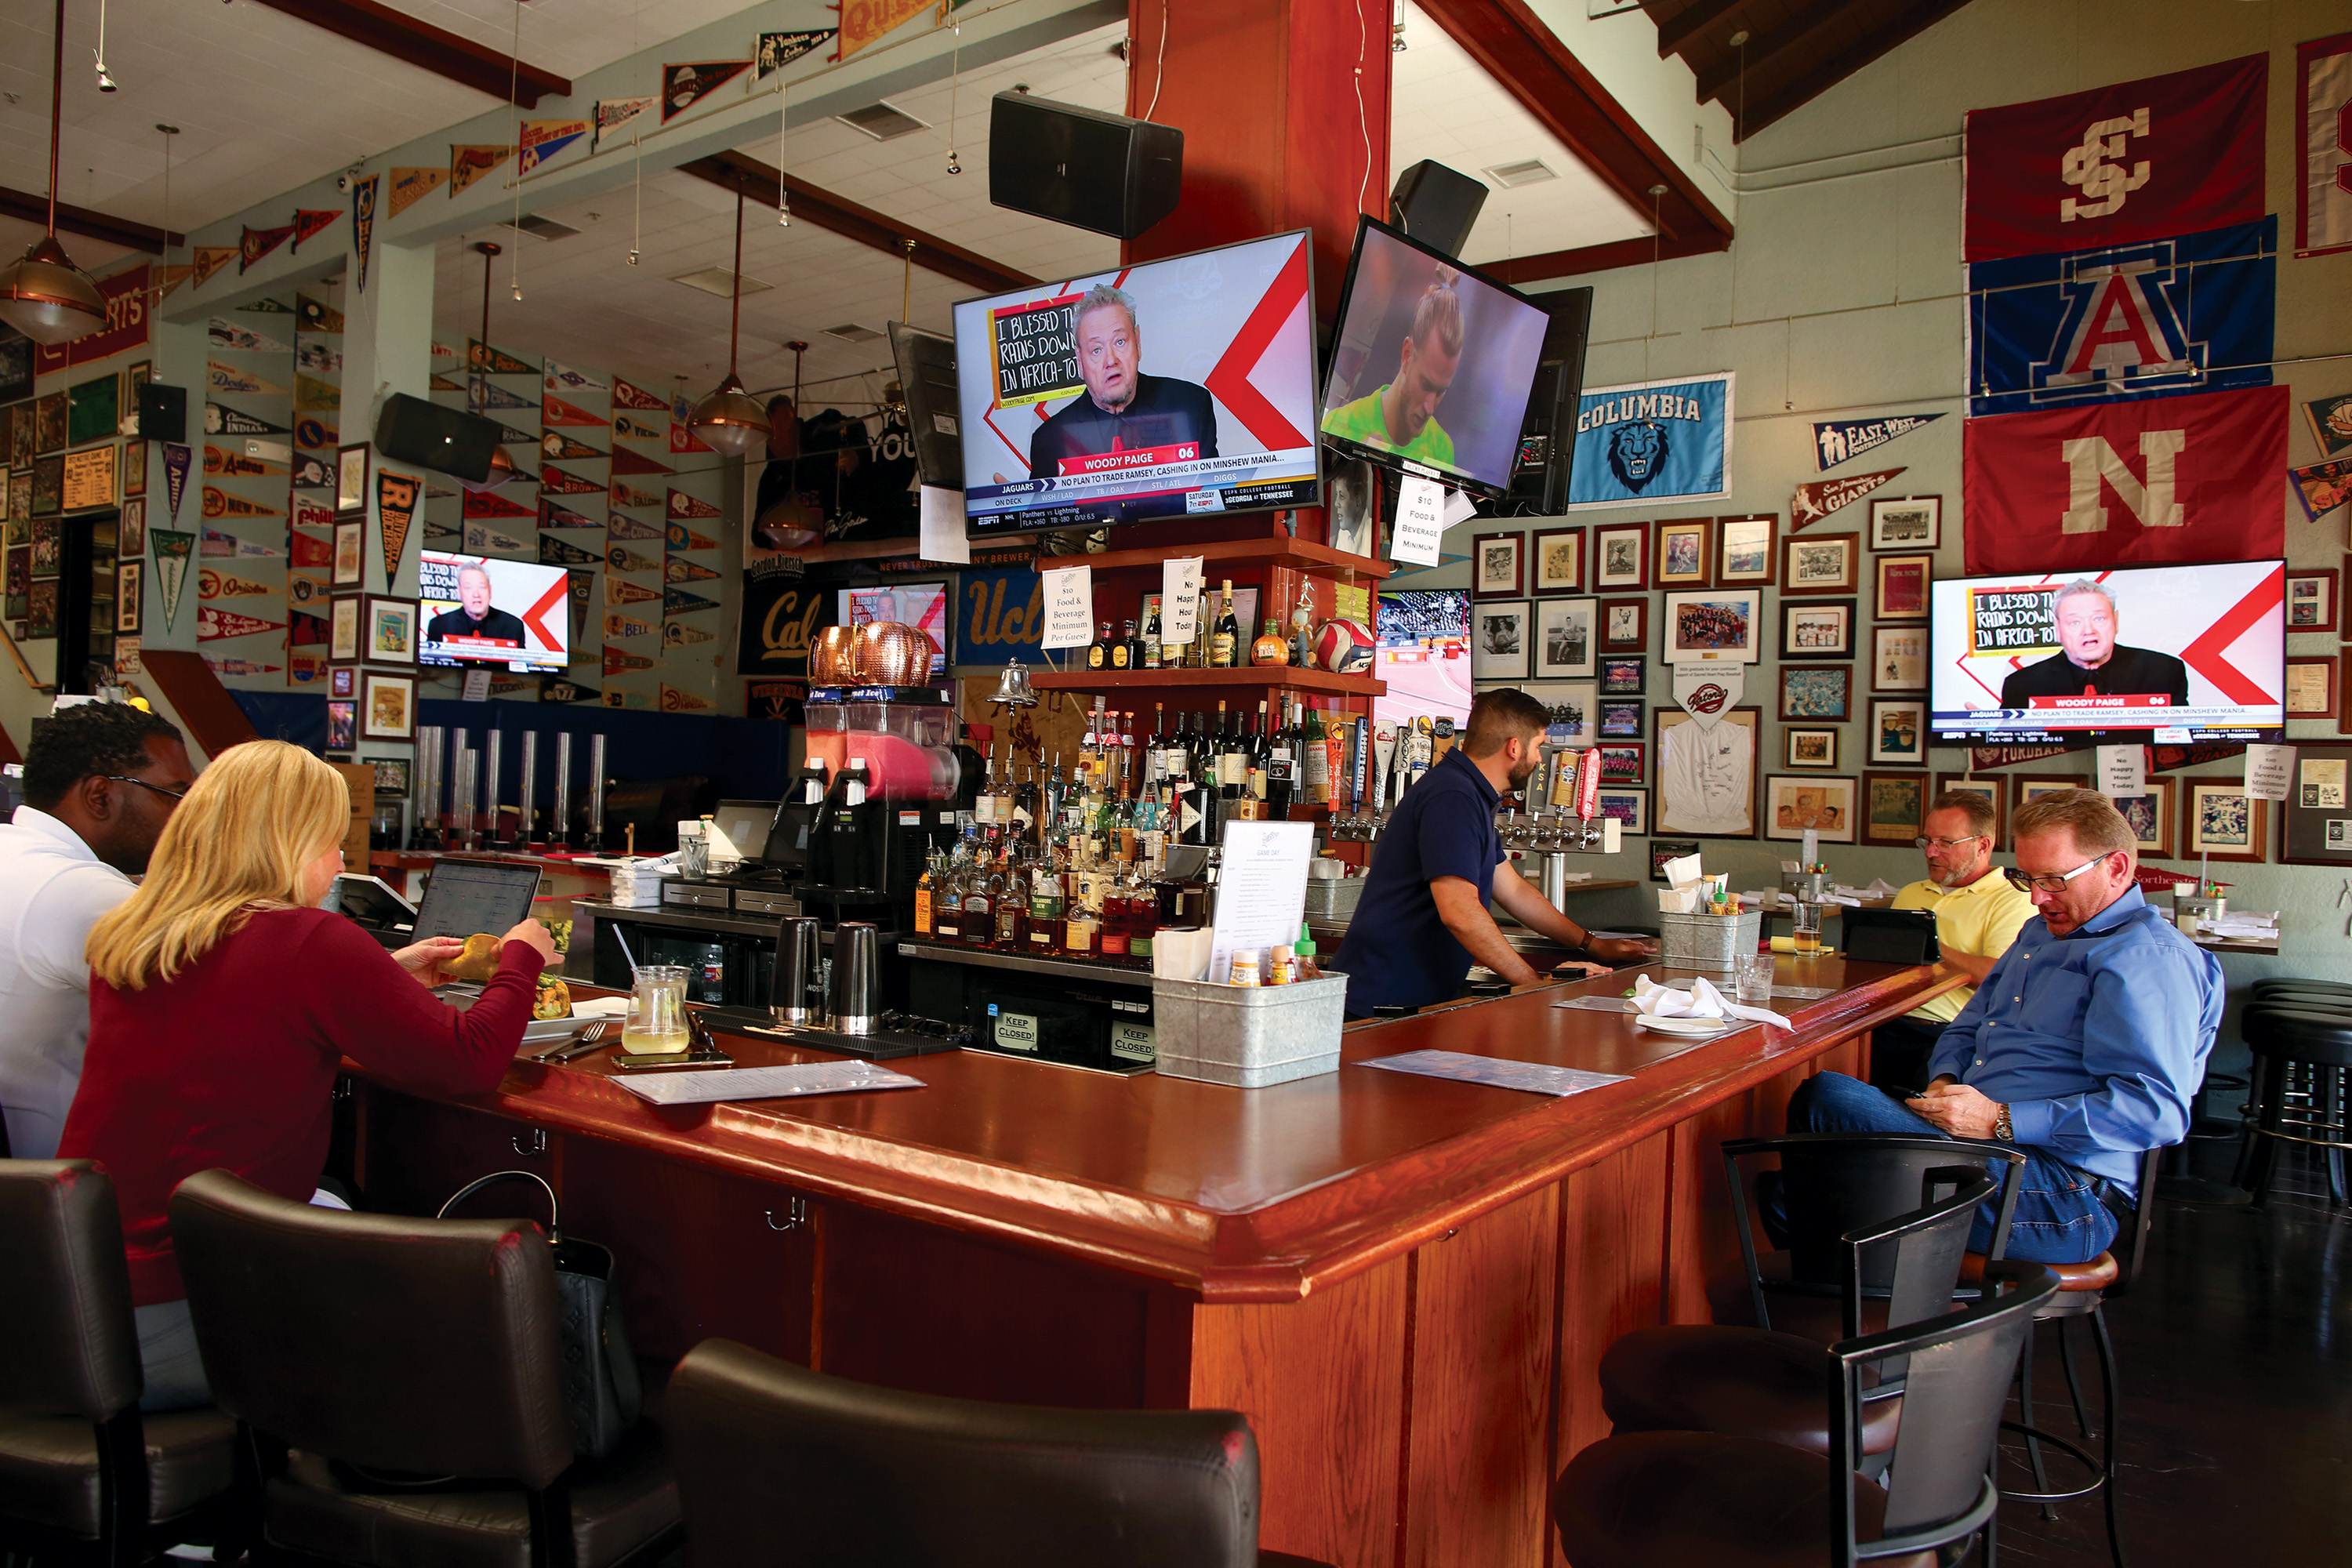 Old Pro sports bar located at 541 Ramona St. doesn't offer its happy hour menu during